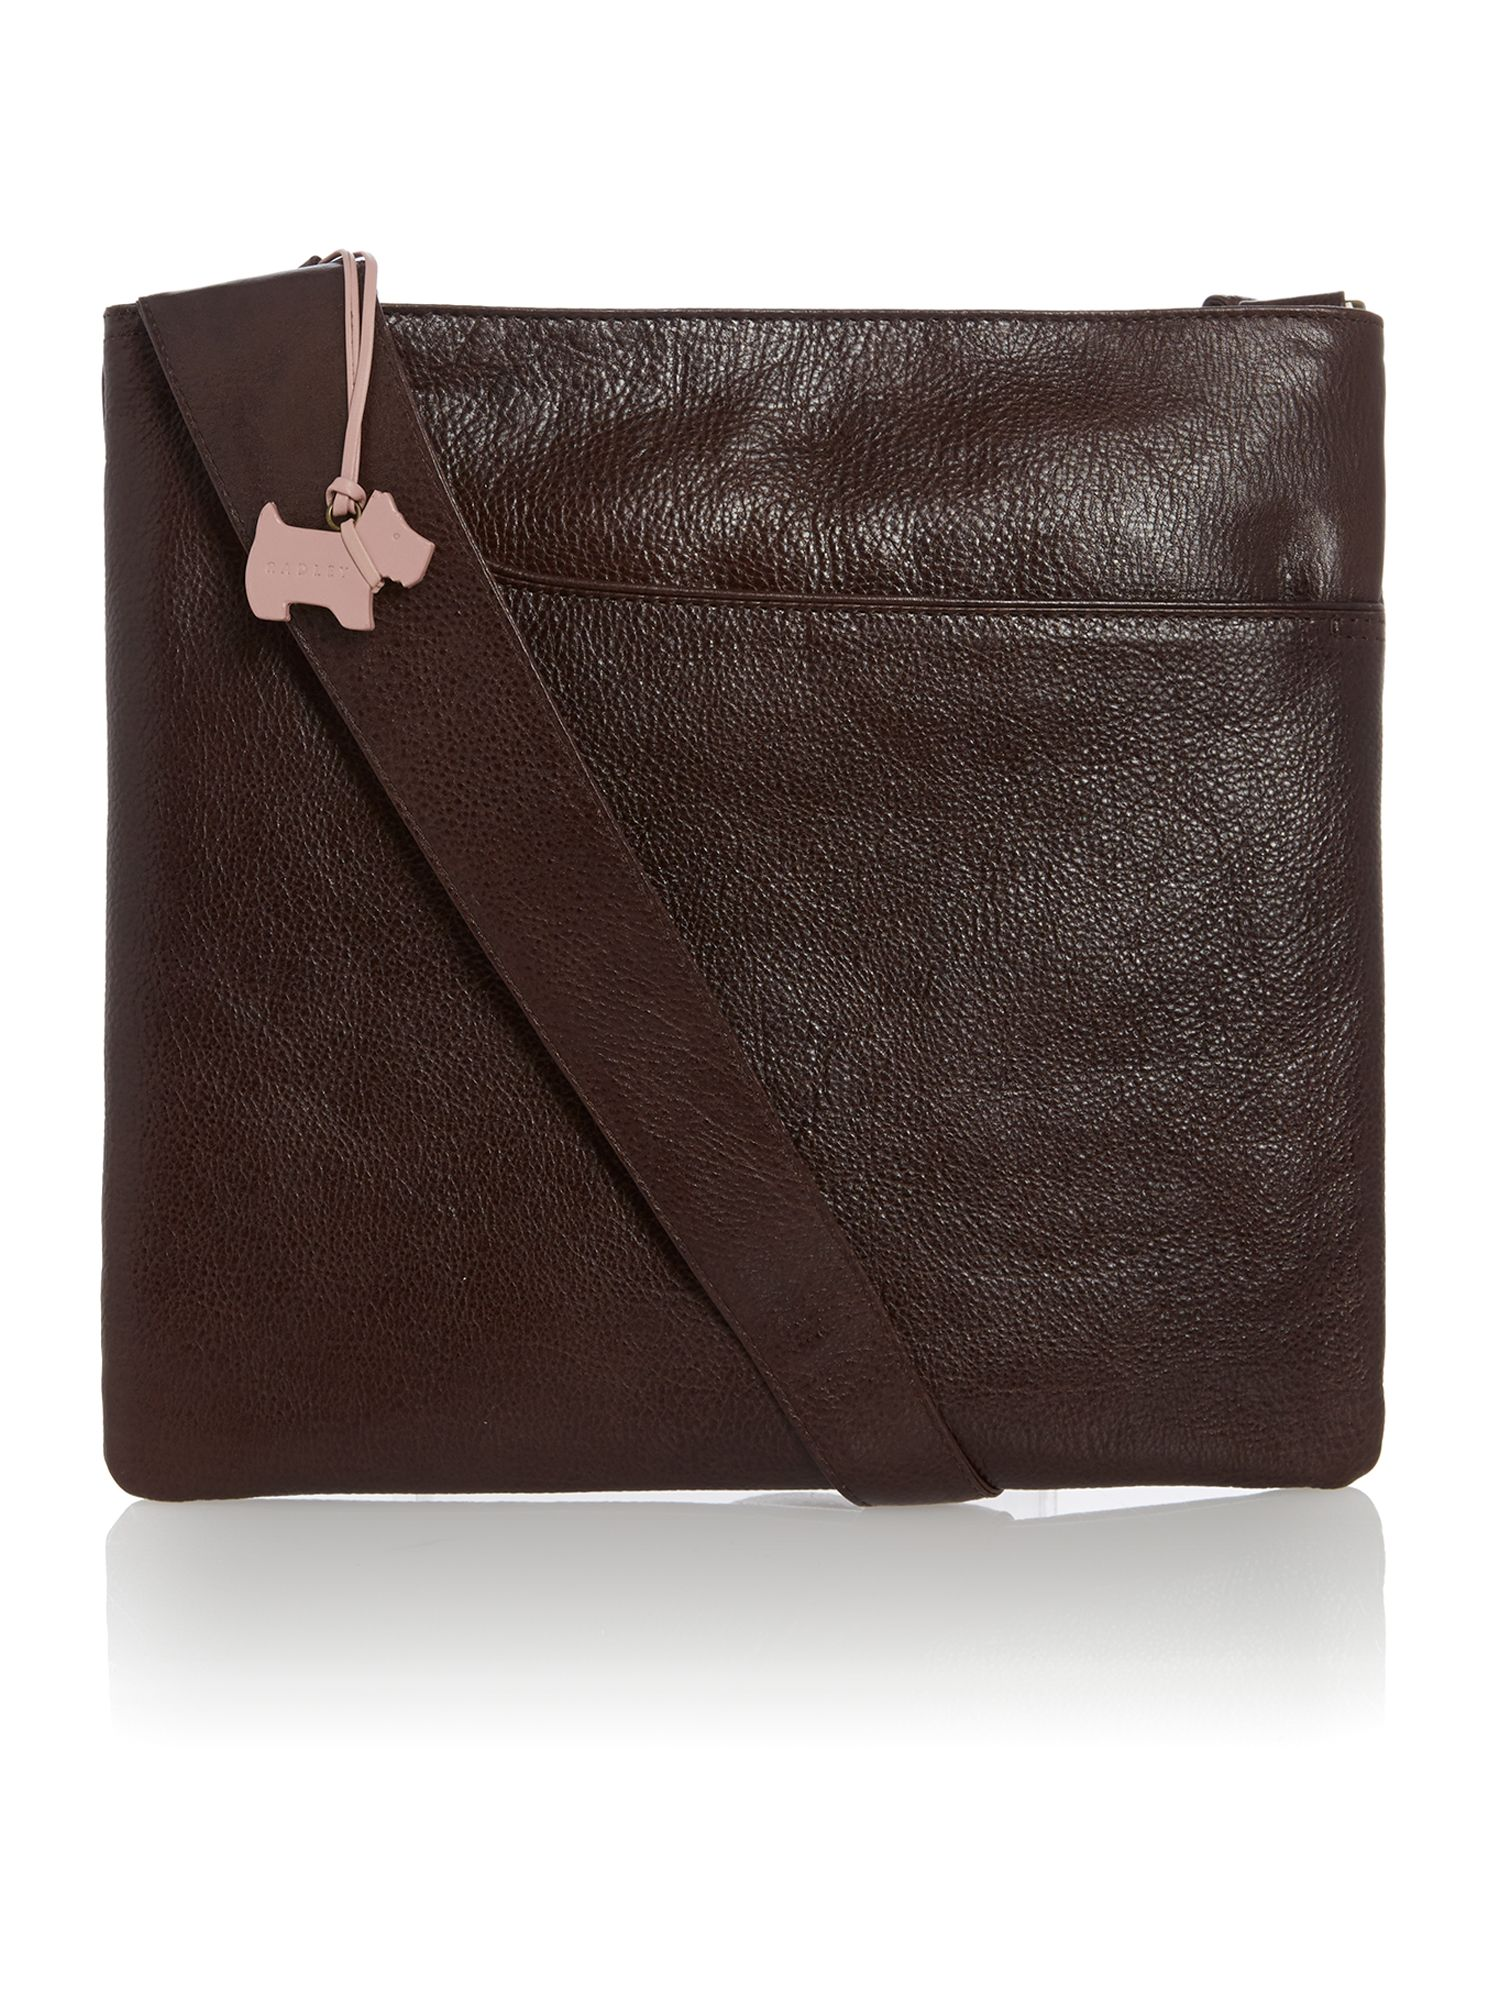 Large brown cross body pocket bag